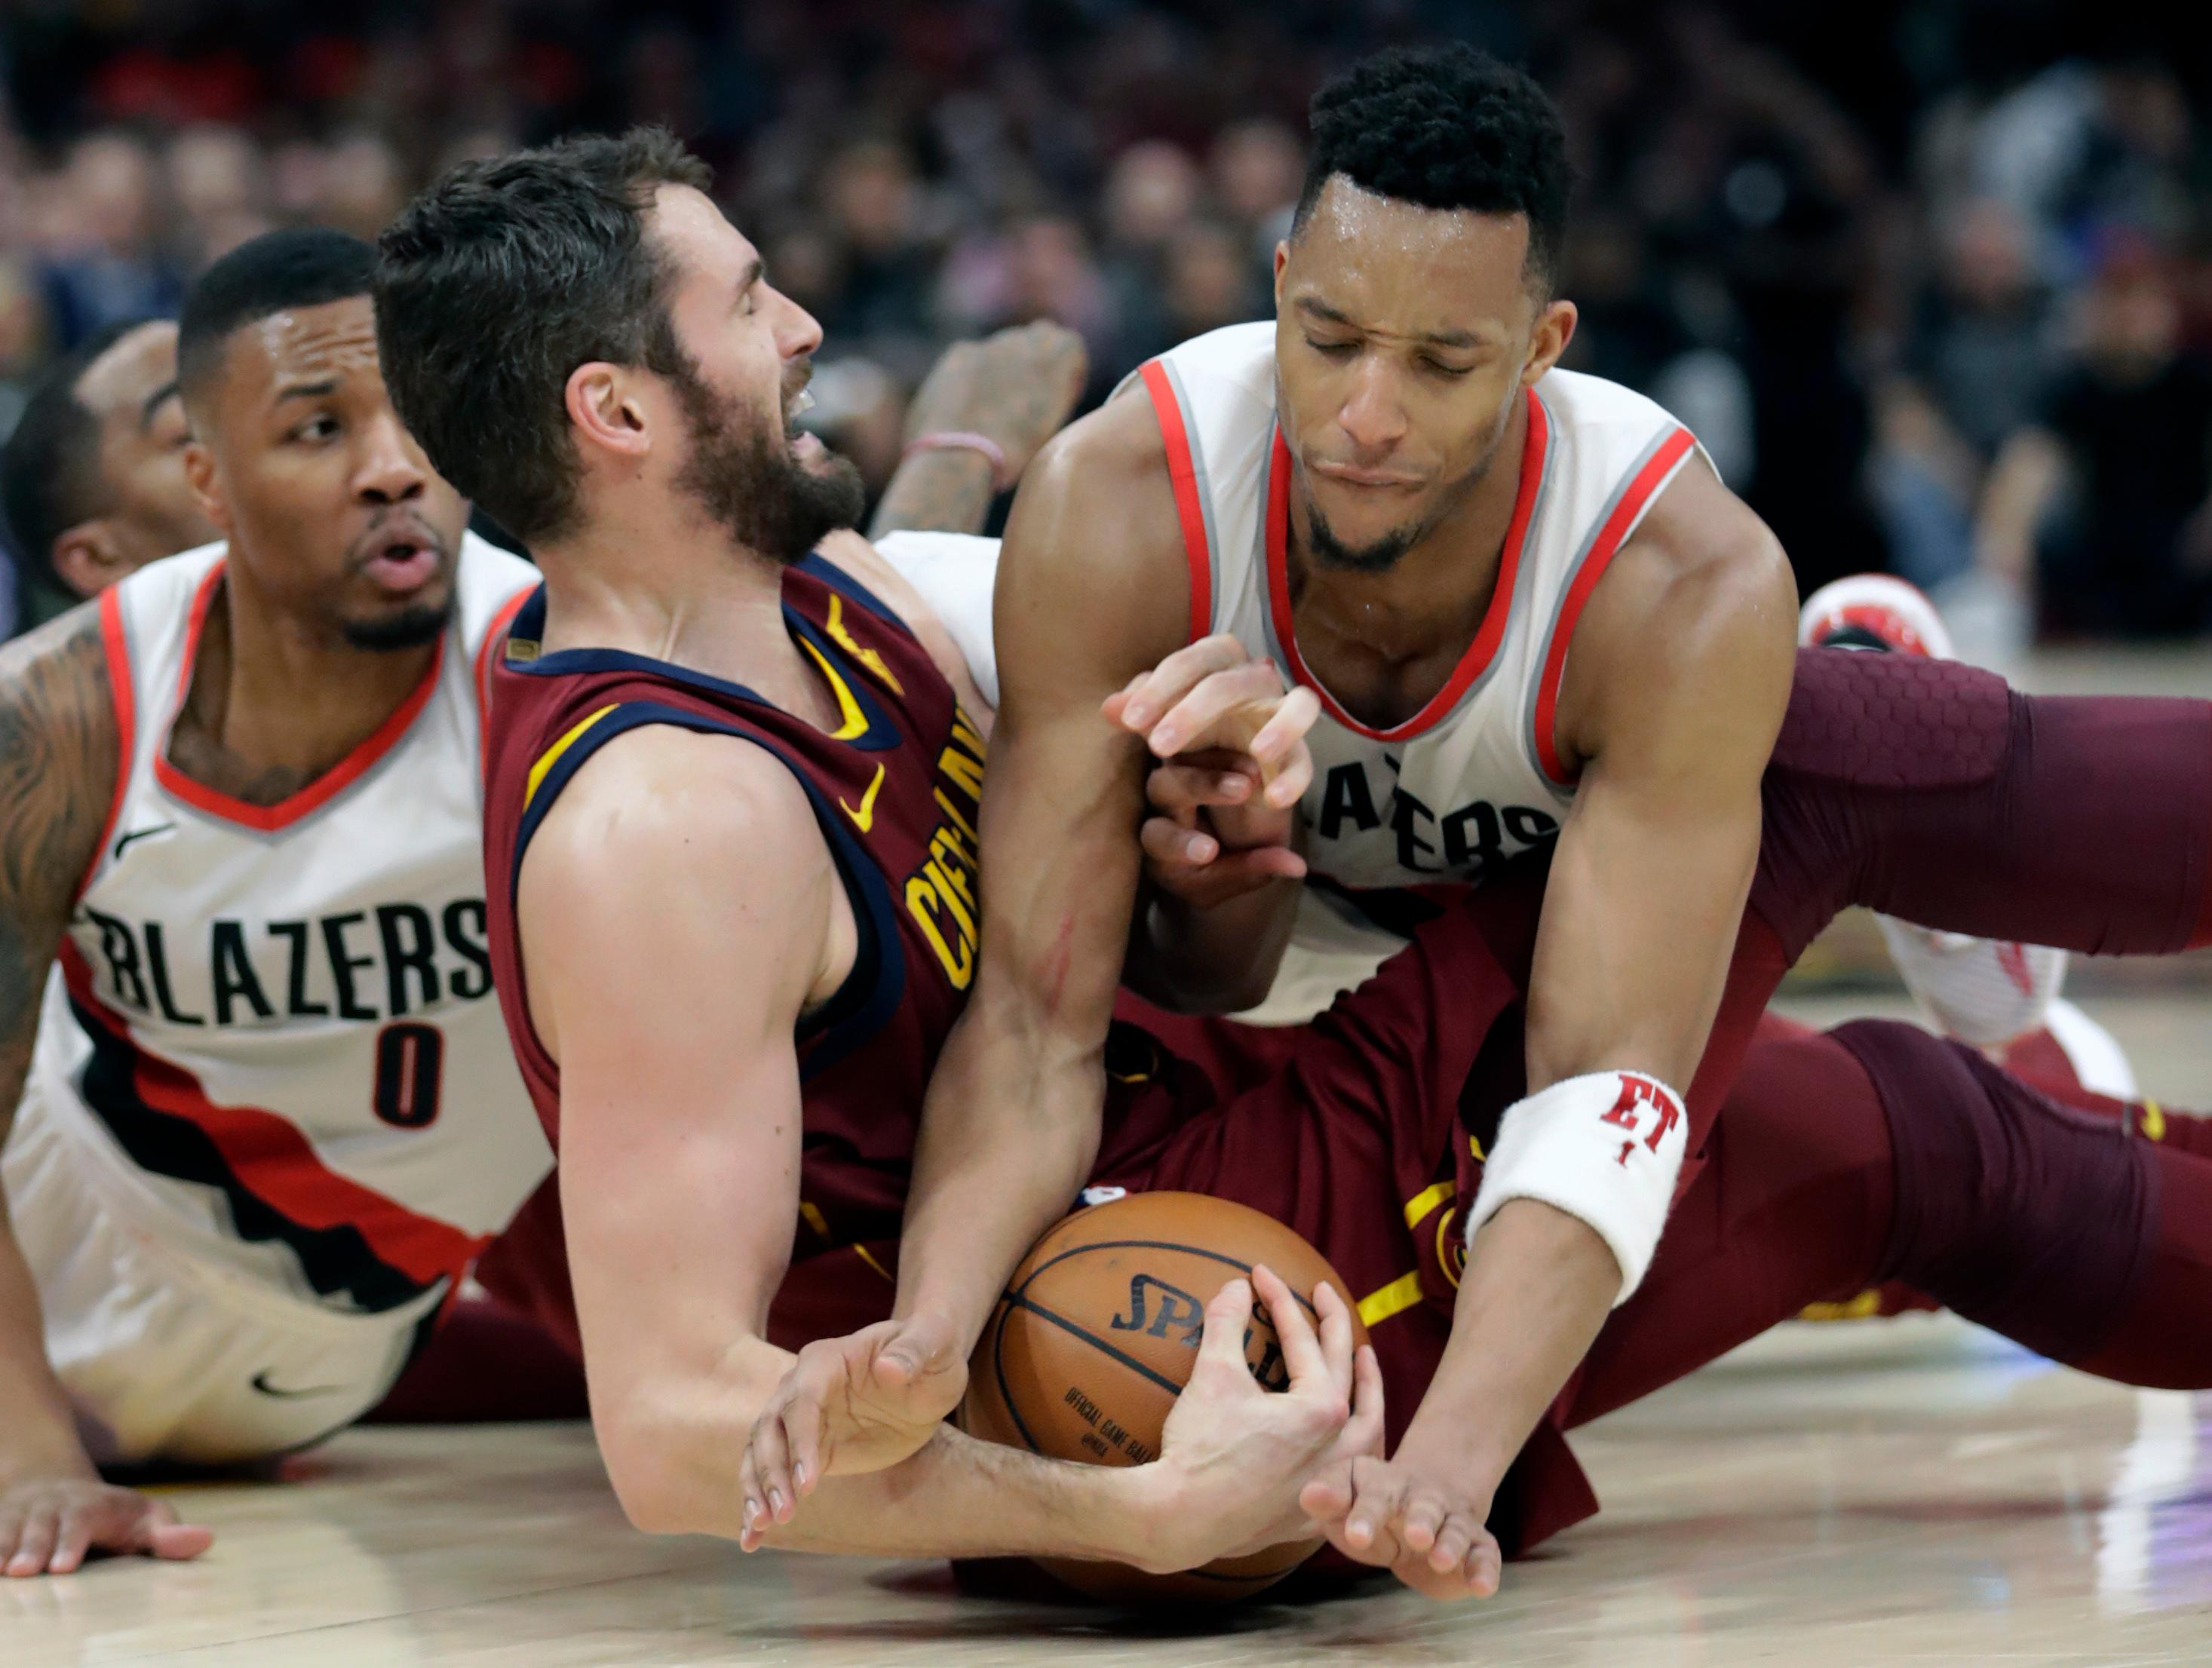 Portland Trail Blazers' Evan Turner, right, tries to get the ball loose from Cleveland Cavaliers' Kevin Love in the first half of an NBA basketball game, Tuesday, Jan. 2, 2018, in Cleveland. (AP Photo/Tony Dejak)